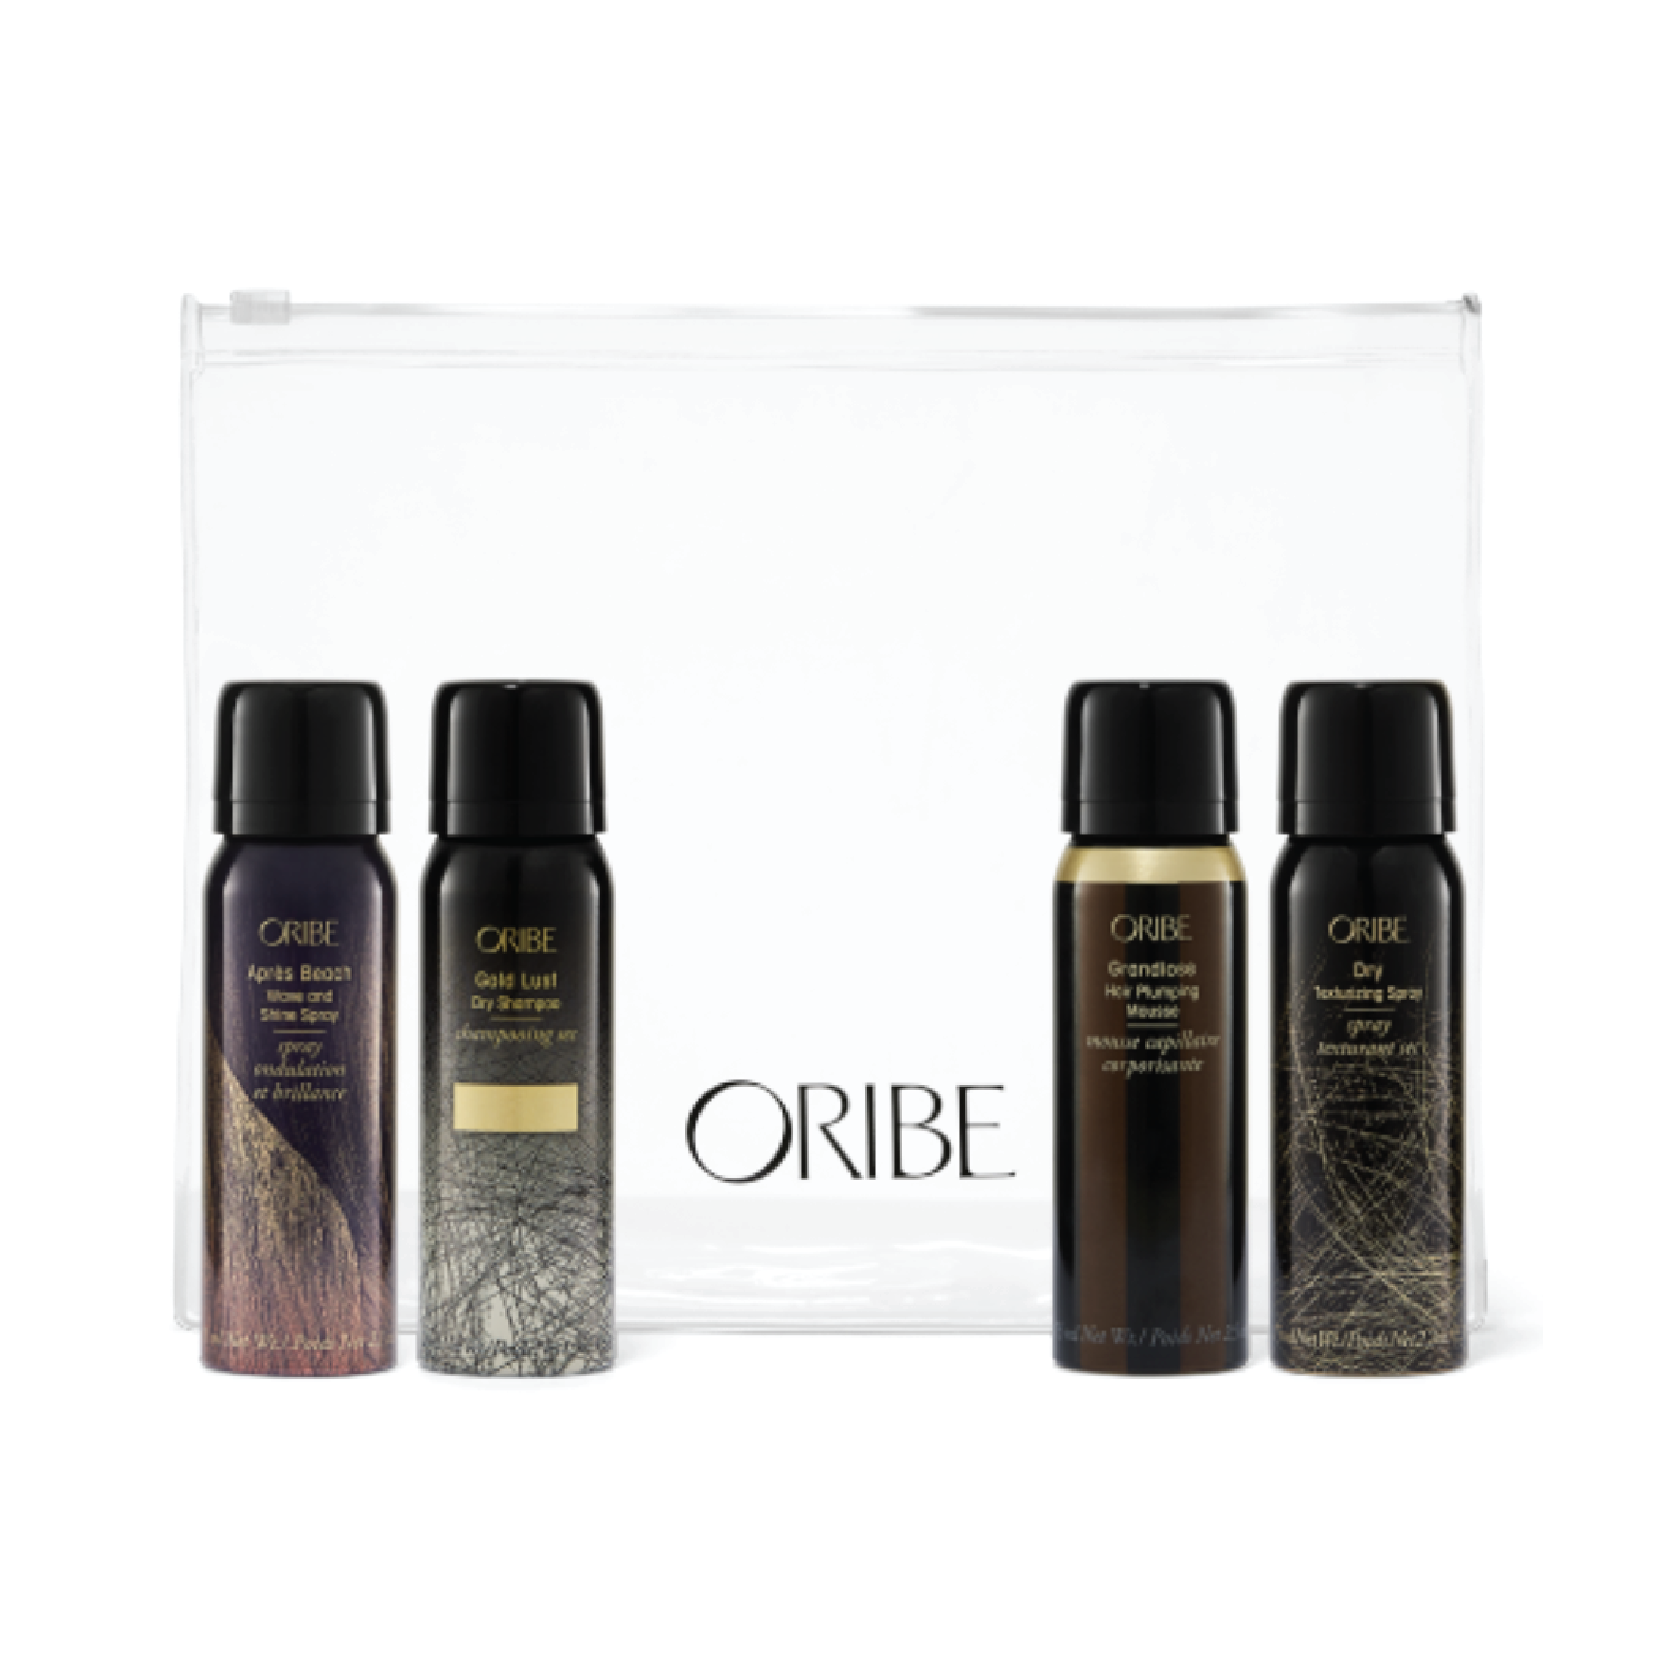 Oribe Purse Size Collection - $72 at BirchboxOribe has some of the best products in the game hands down. This set has their bestselling essentials perfect for travel.